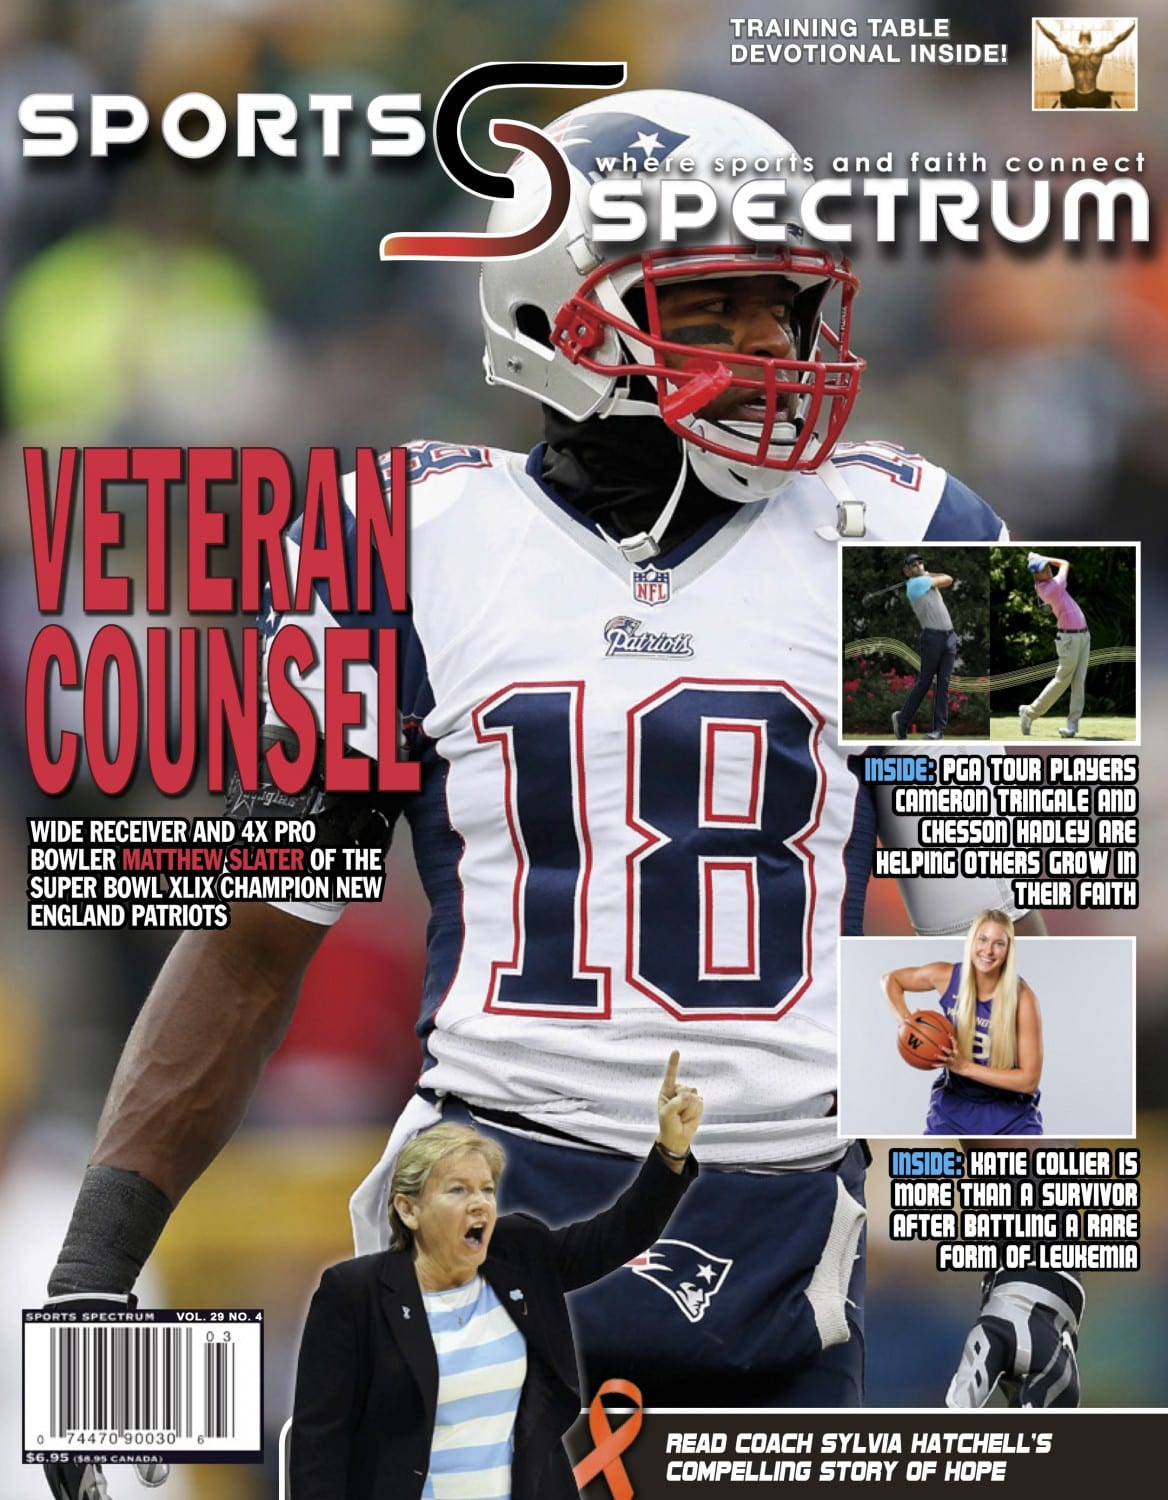 c22bf978c Veteran Counsel  Four-time Pro Bowler Matthew Slater is admired for ...